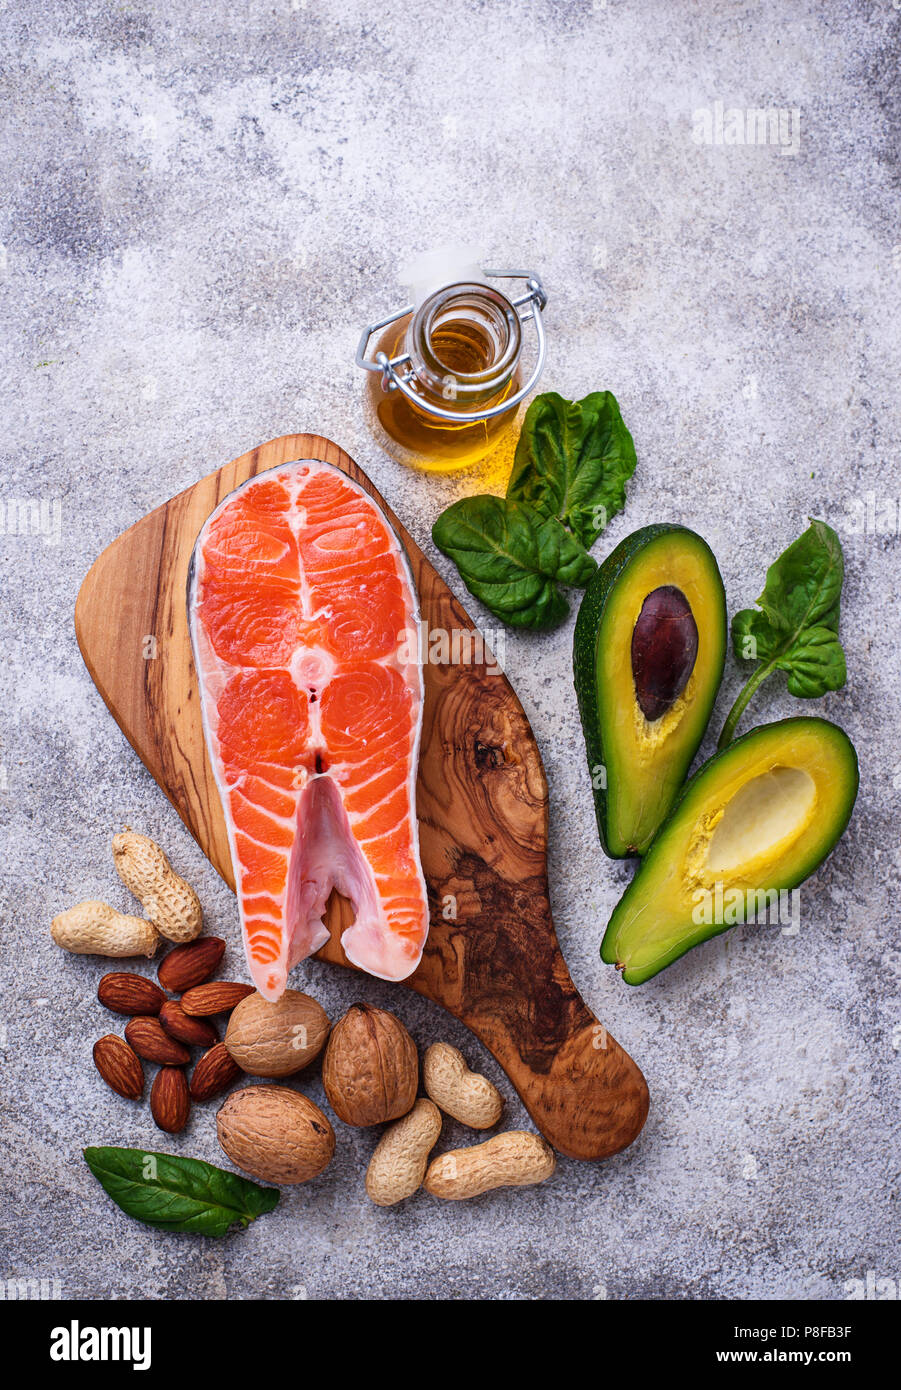 Selection of healthy fat and omega 3 sources. - Stock Image